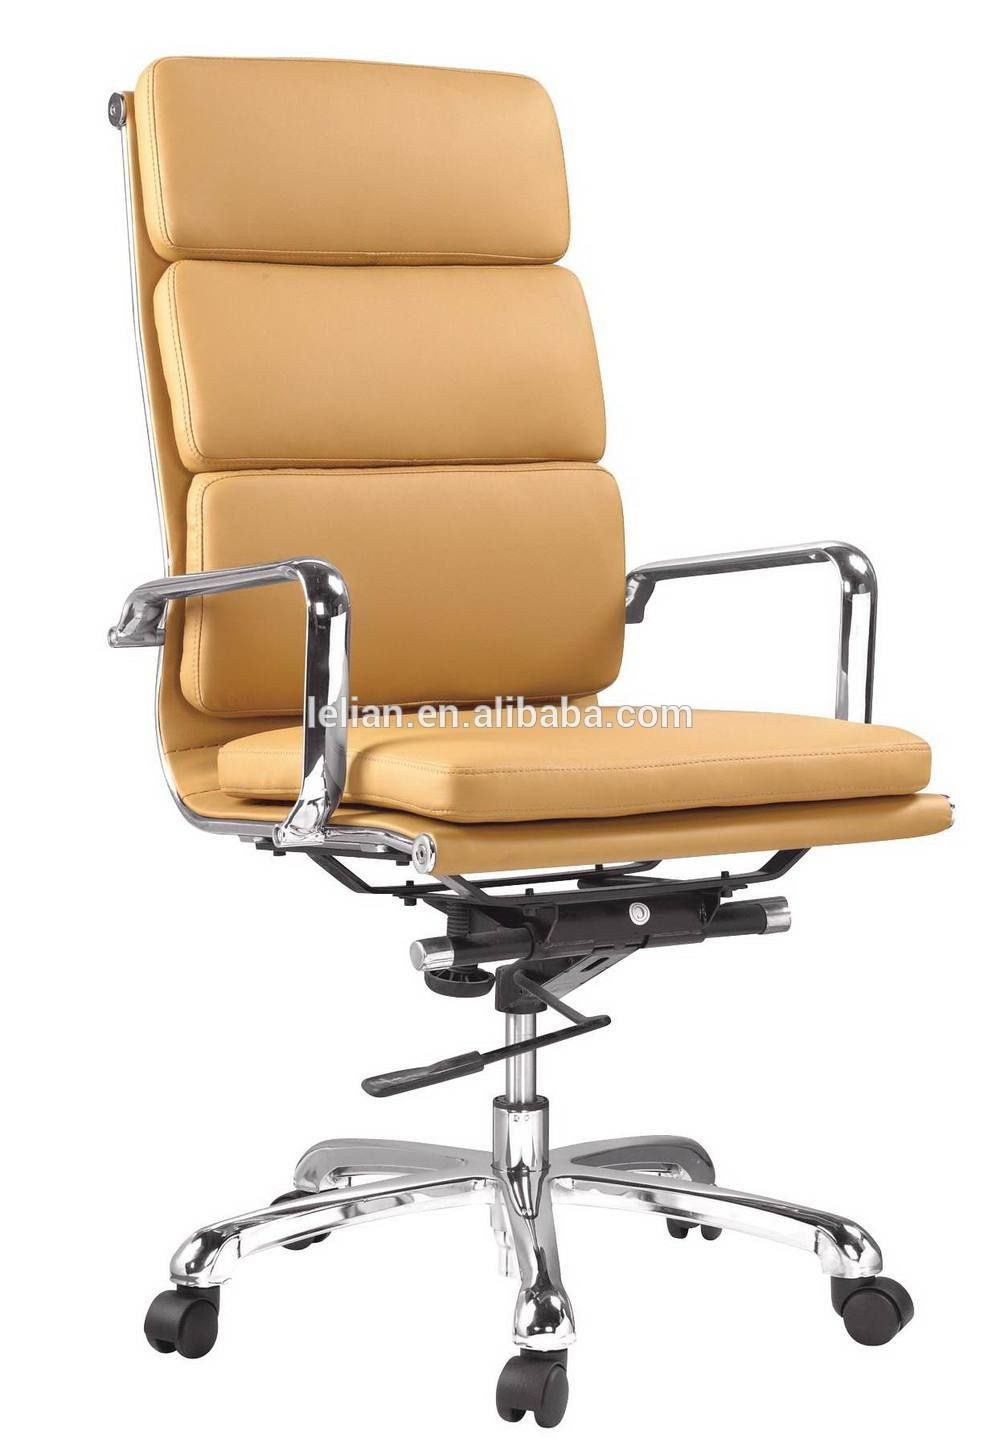 Chair Price Godrej Furniture Price List From Office Chair Manufacturer L 88b